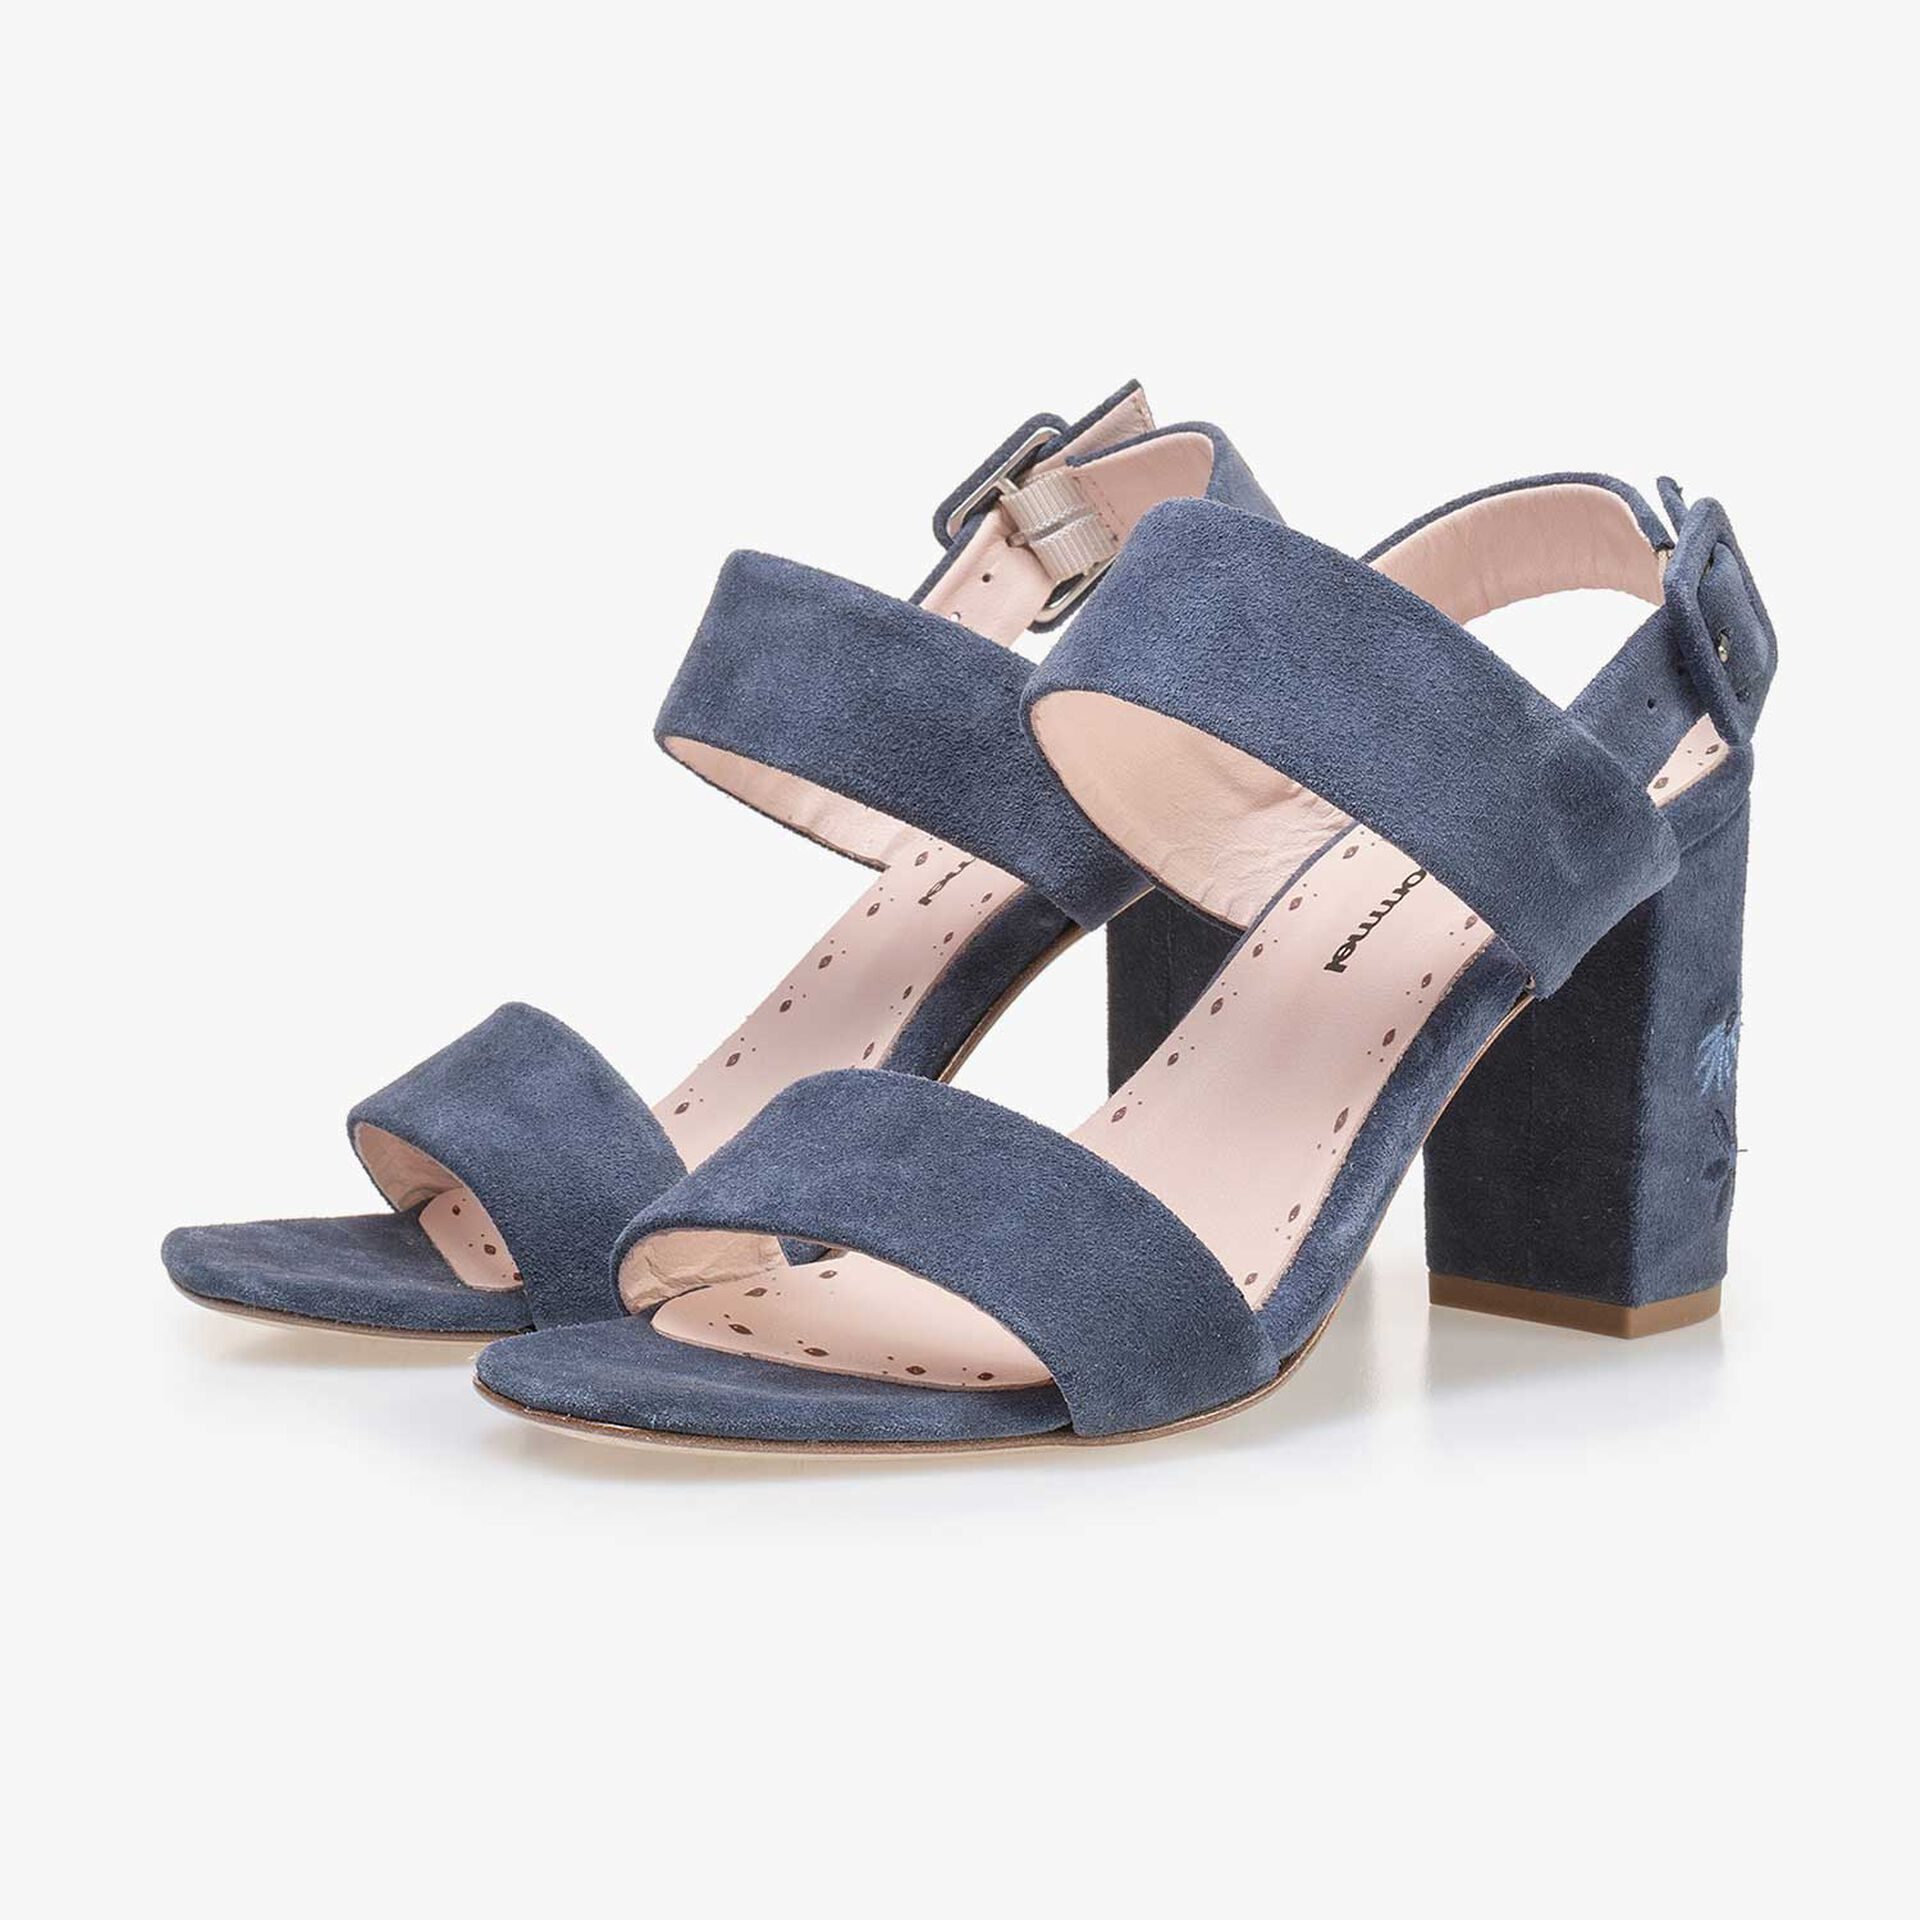 Denim blue calf's suede leather sandal with floral embroidery stitching